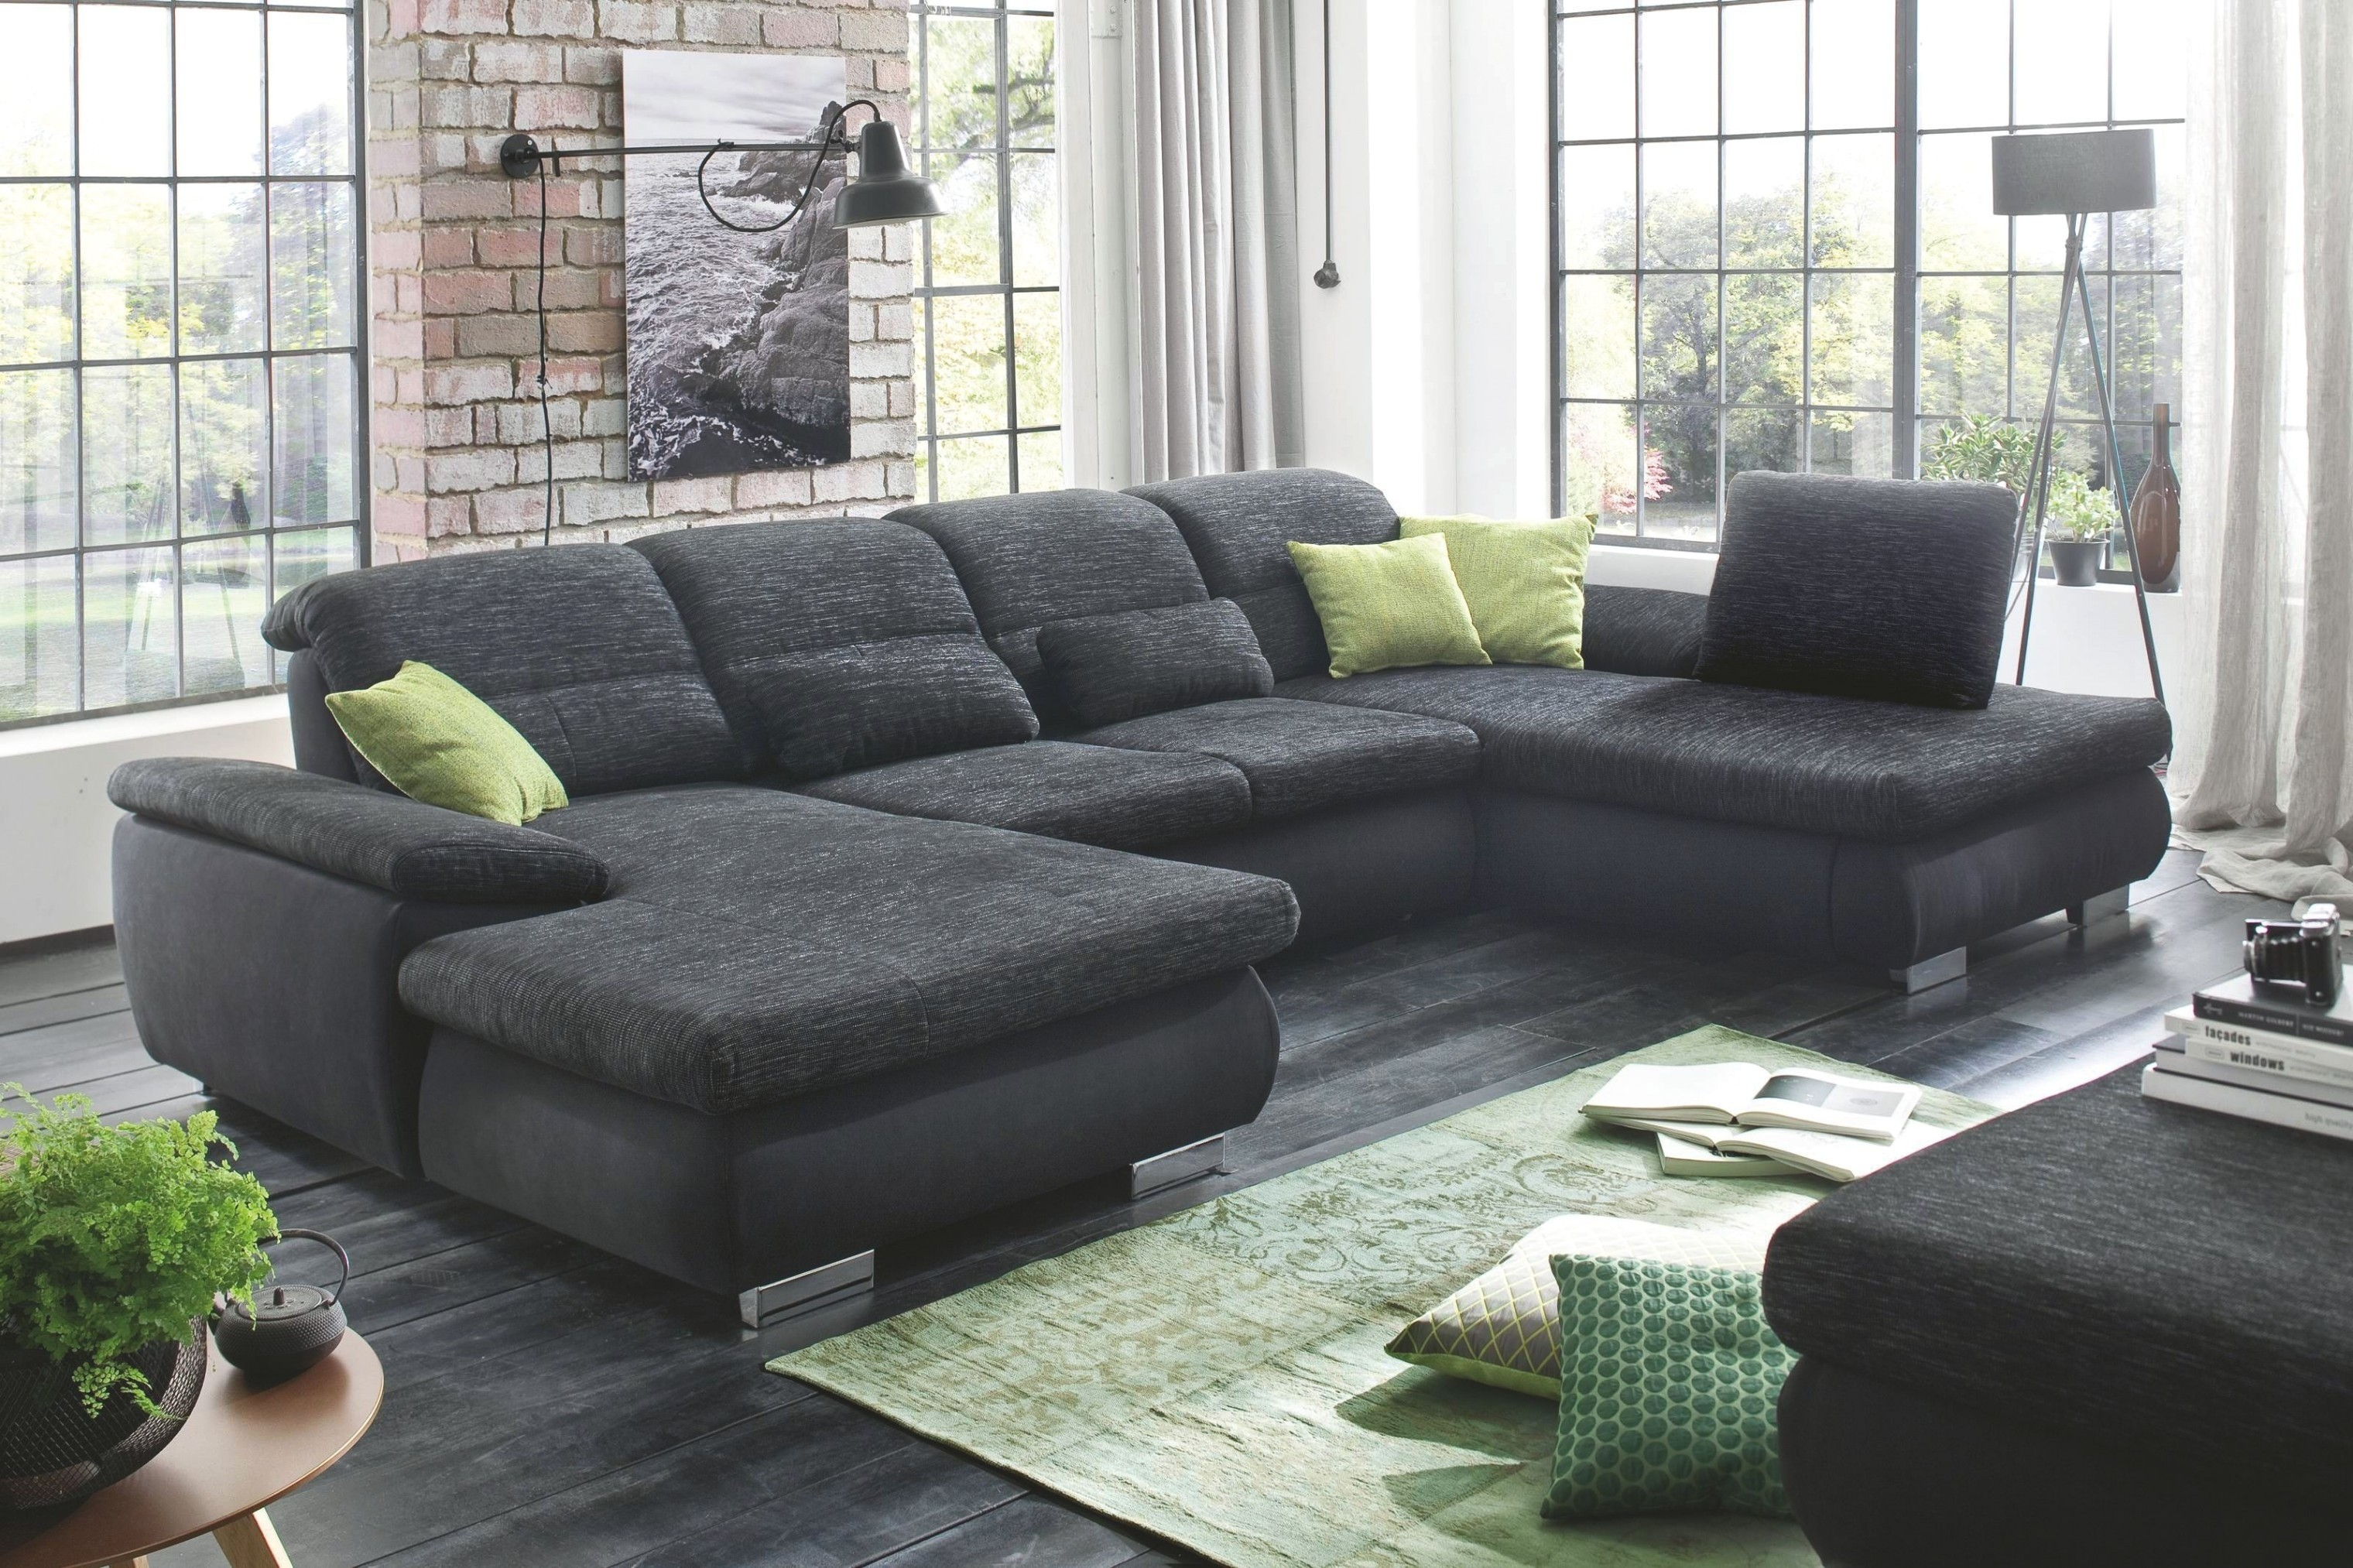 L Shaped Coffee Table Home Design as Well as Stunning sofa